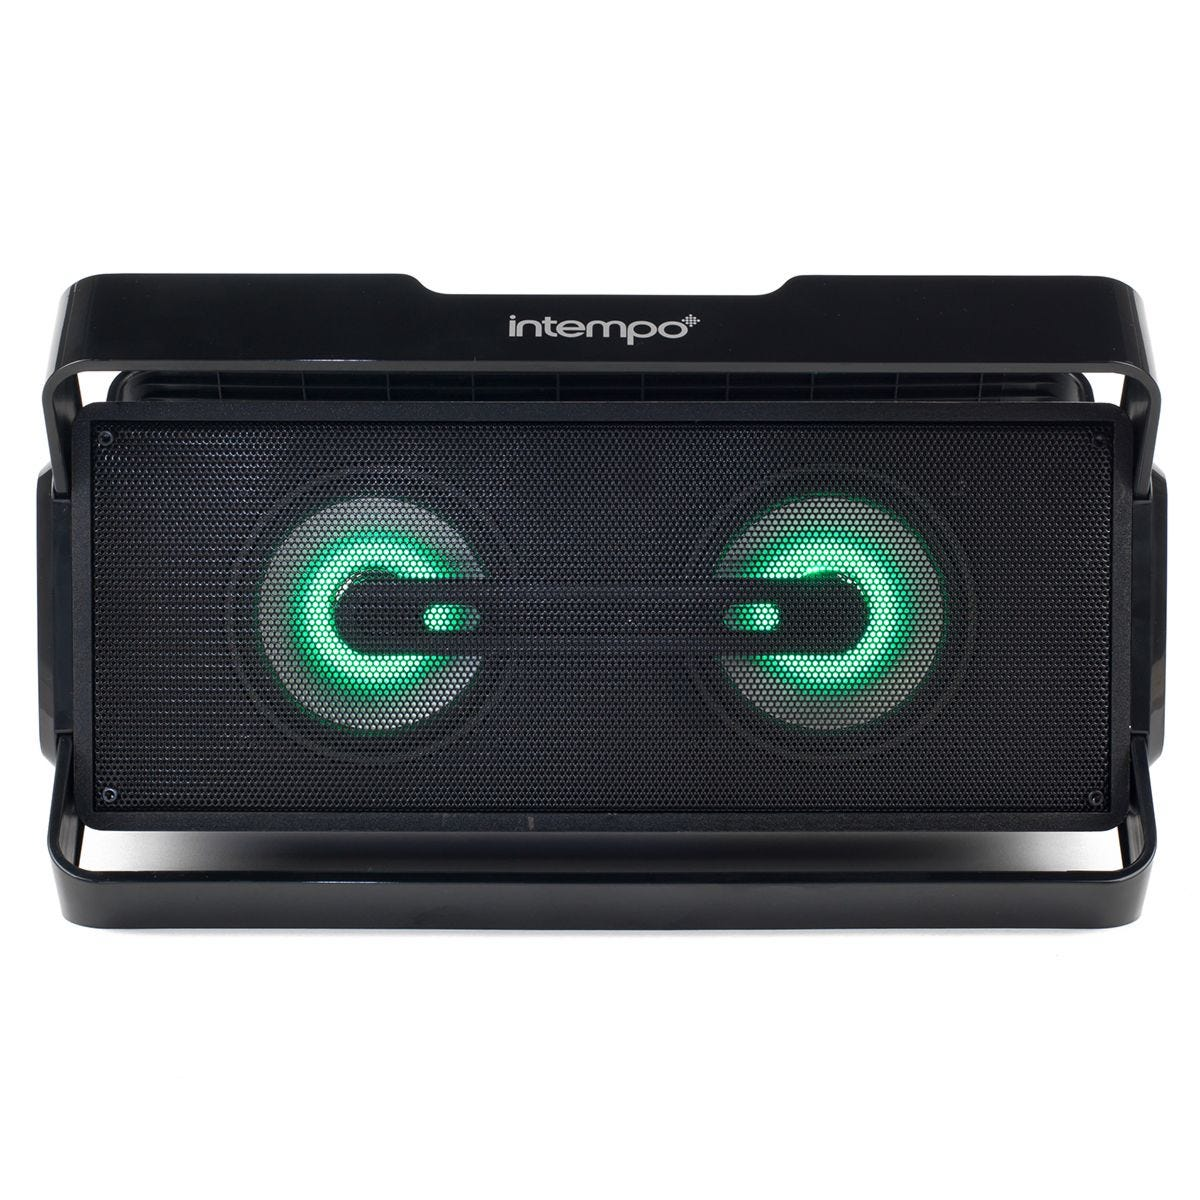 Intempo LED Bluetooth Boombox Speaker for iPhone, Android and Other Smart USB Devices - Black